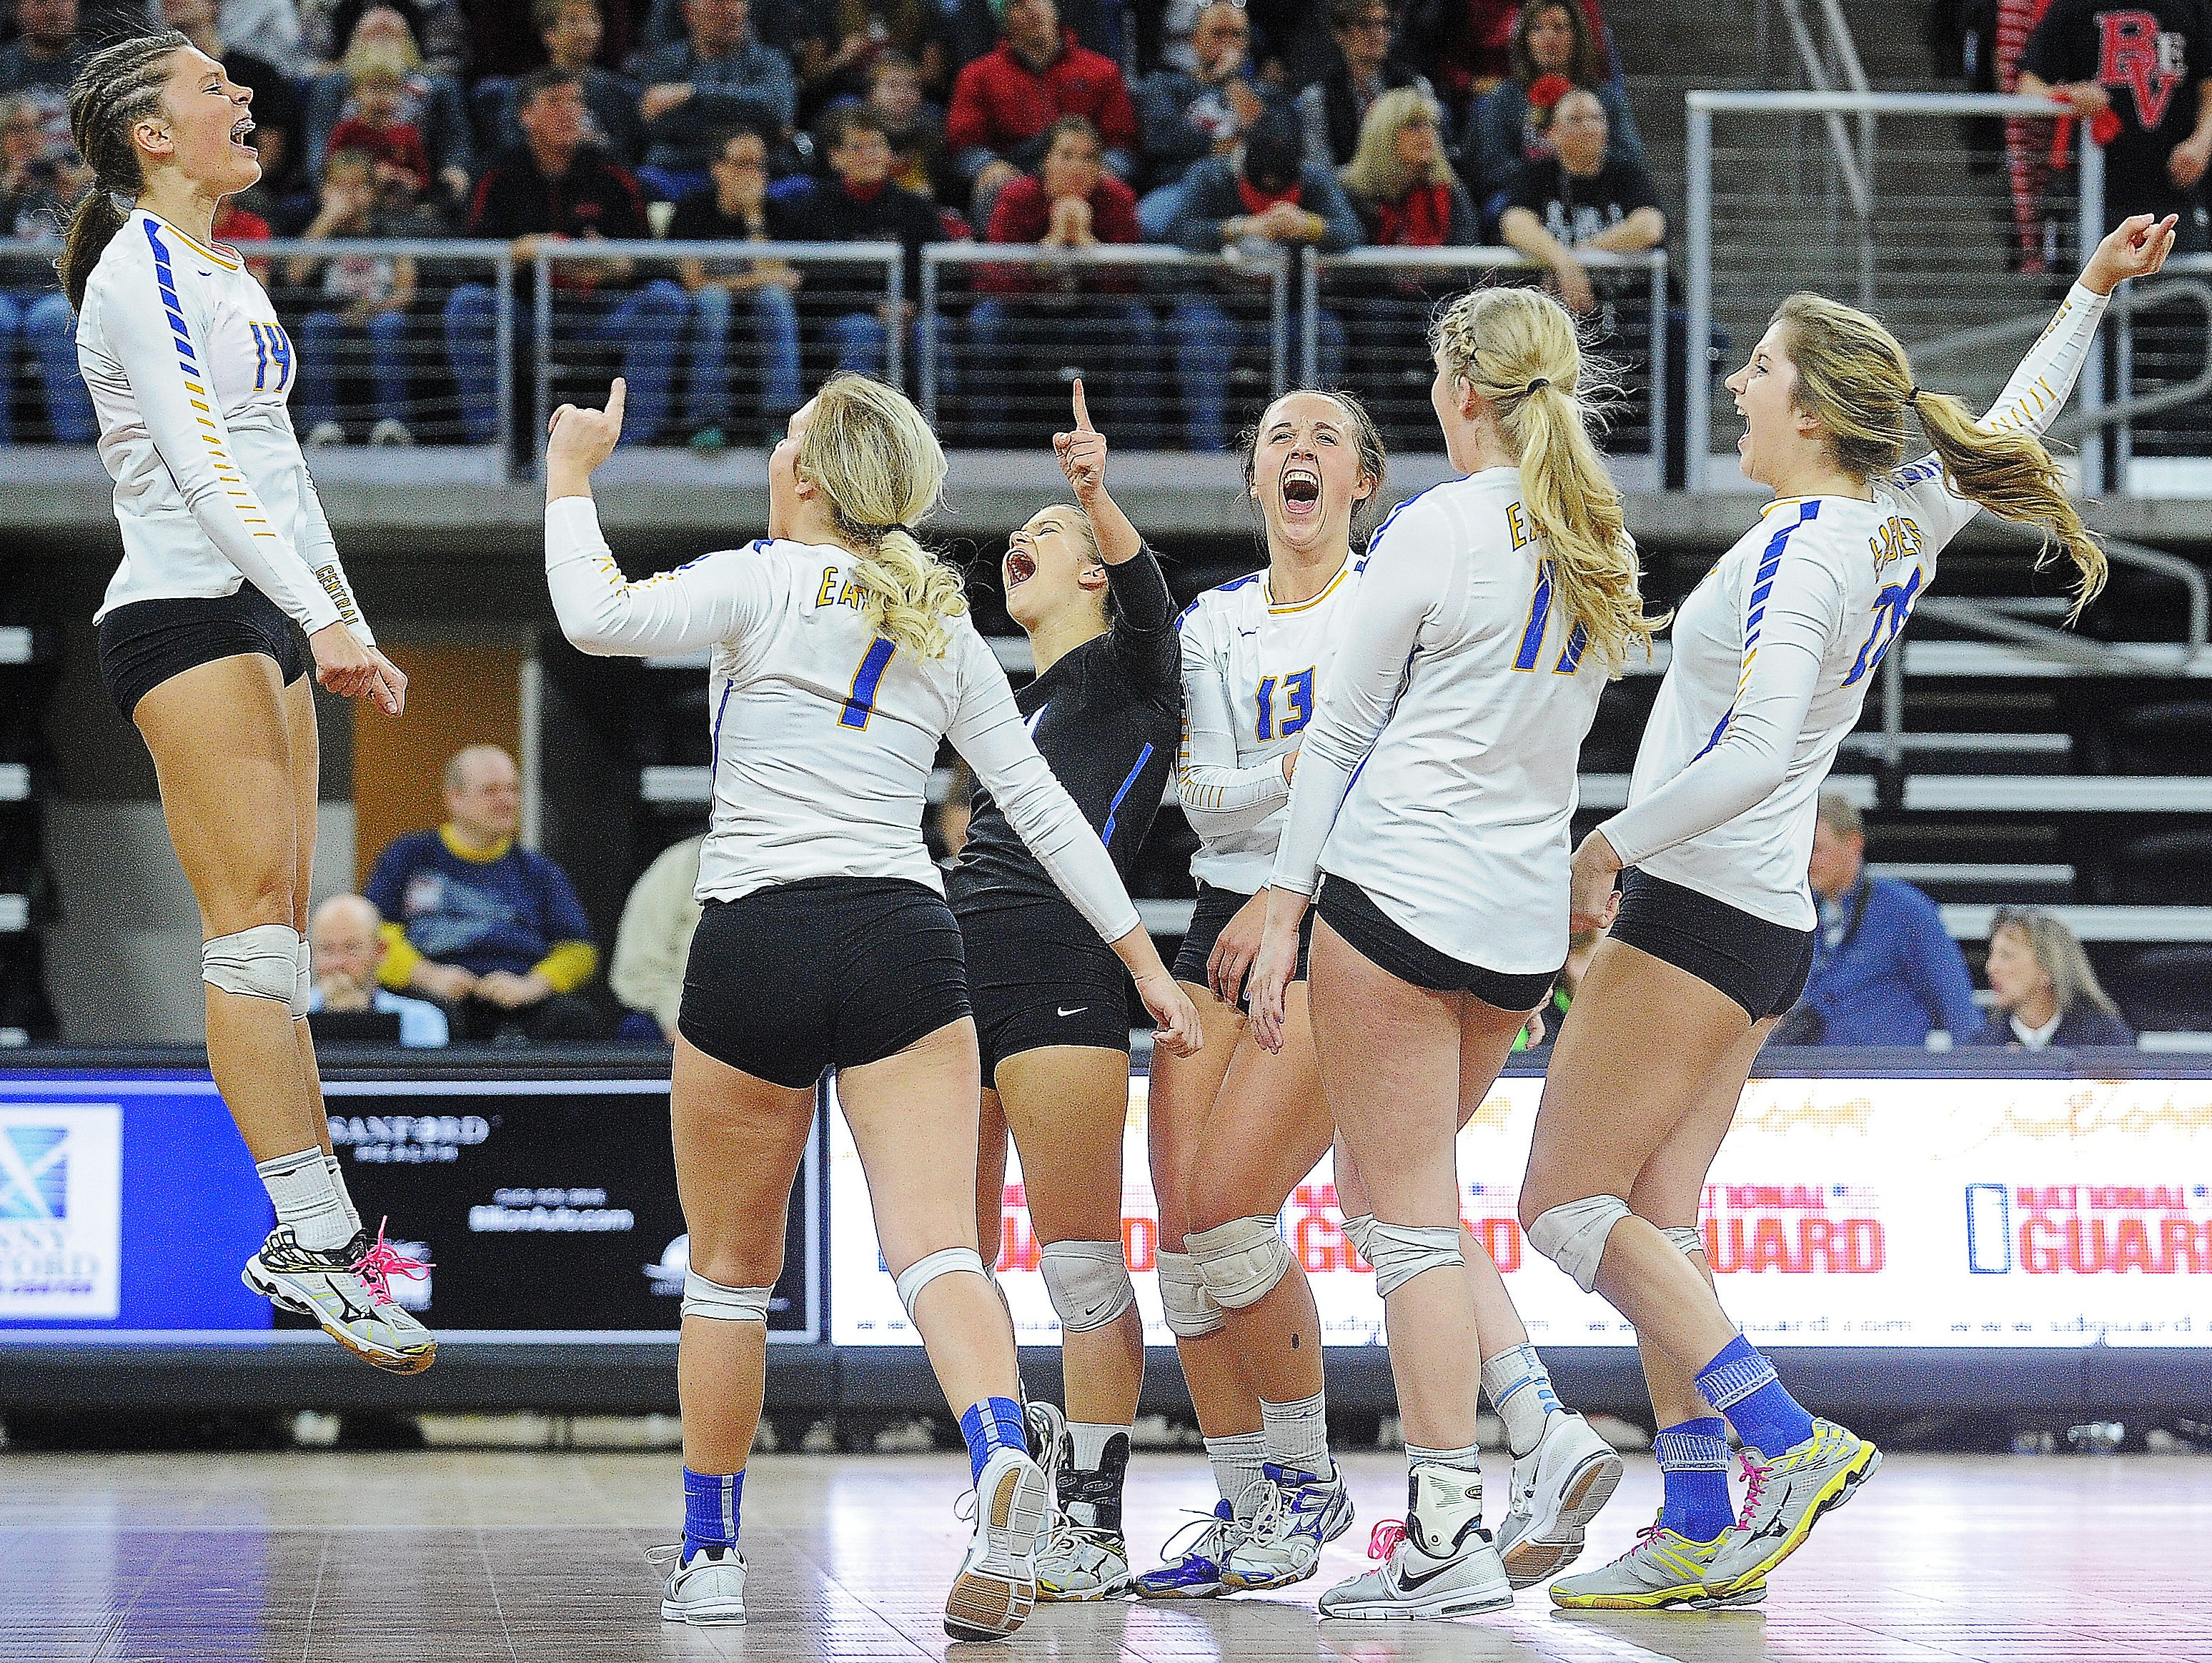 Aberdeen Central players react during the South Dakota State High School Class AA championship volleyball match against Brandon Valley Saturday, Nov. 21, 2015, at the Denny Sanford Premier Center in Sioux Falls.